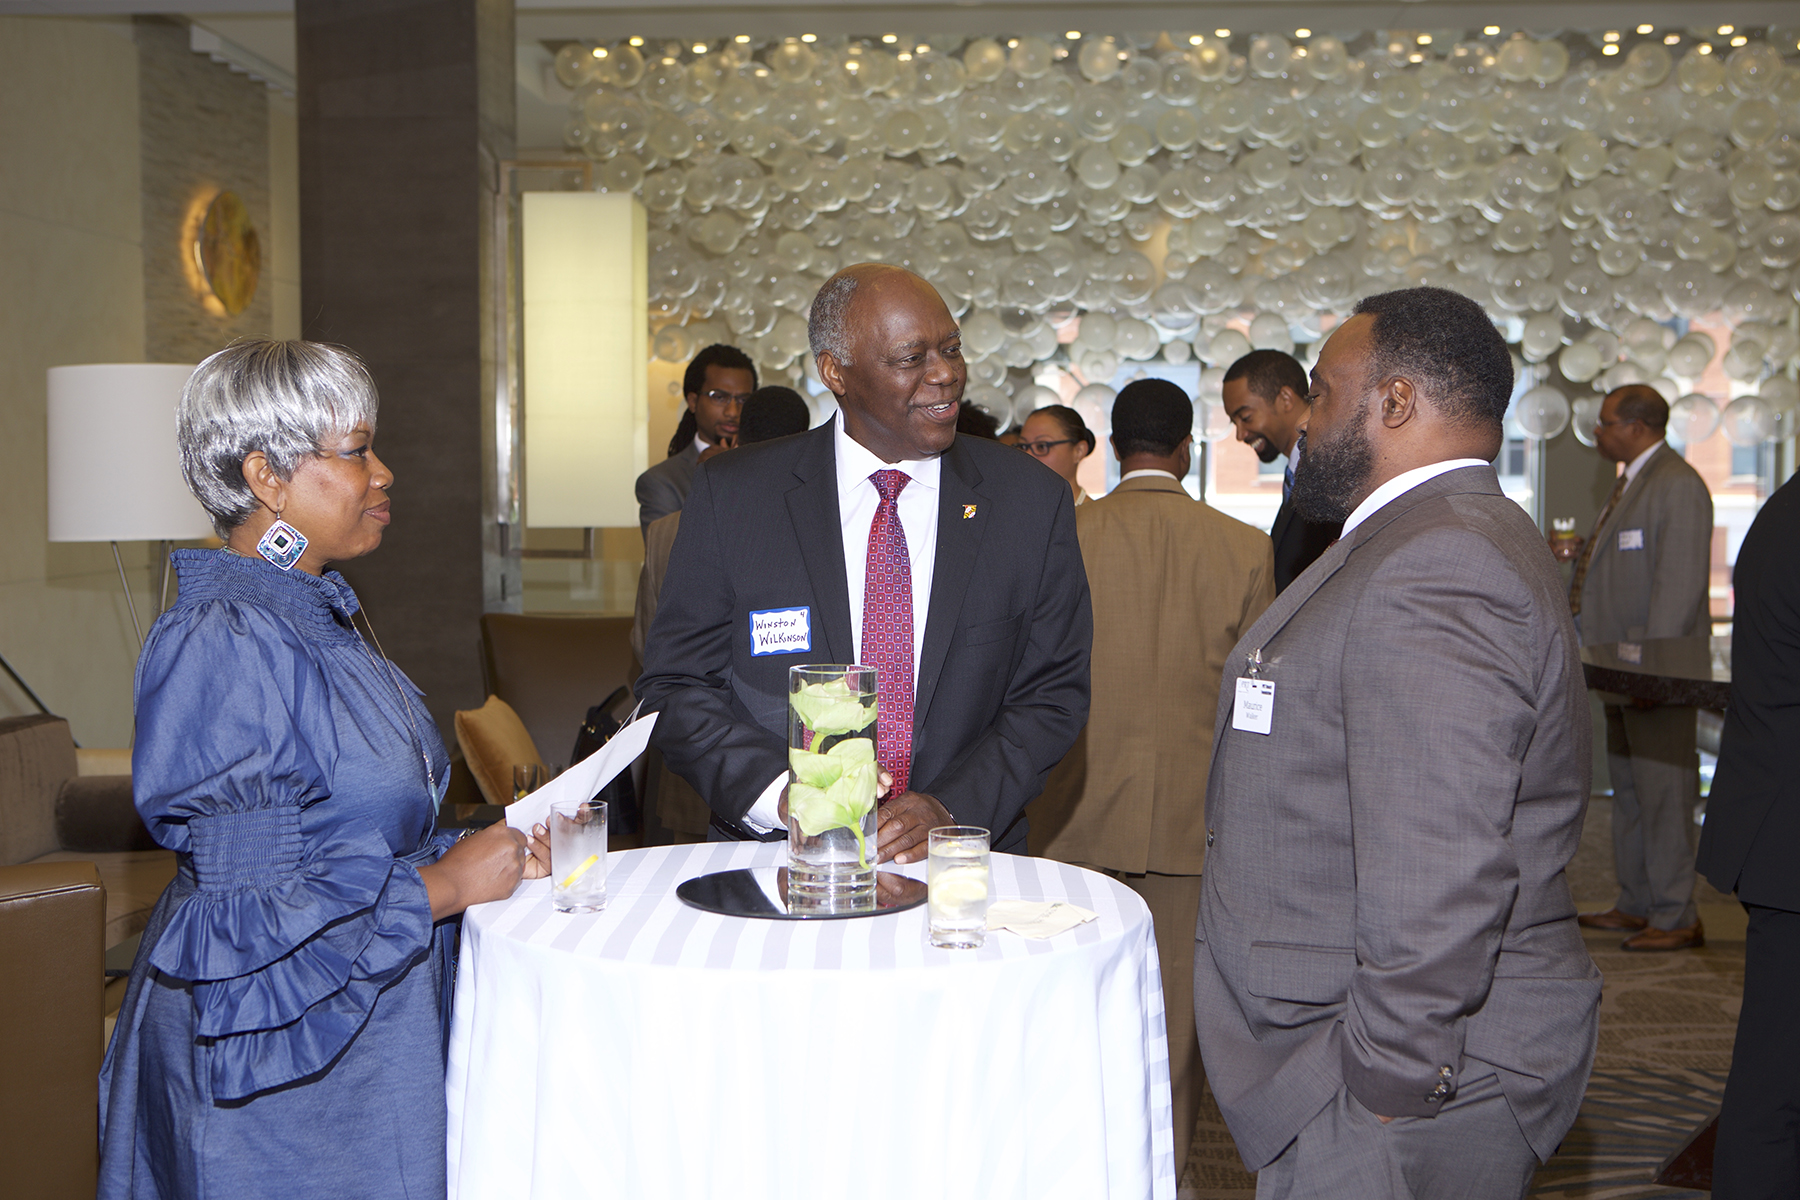 Maurice Walker (PRT Member - Birch Advisors) chats with Winston Wilkinson and Ramona Curry